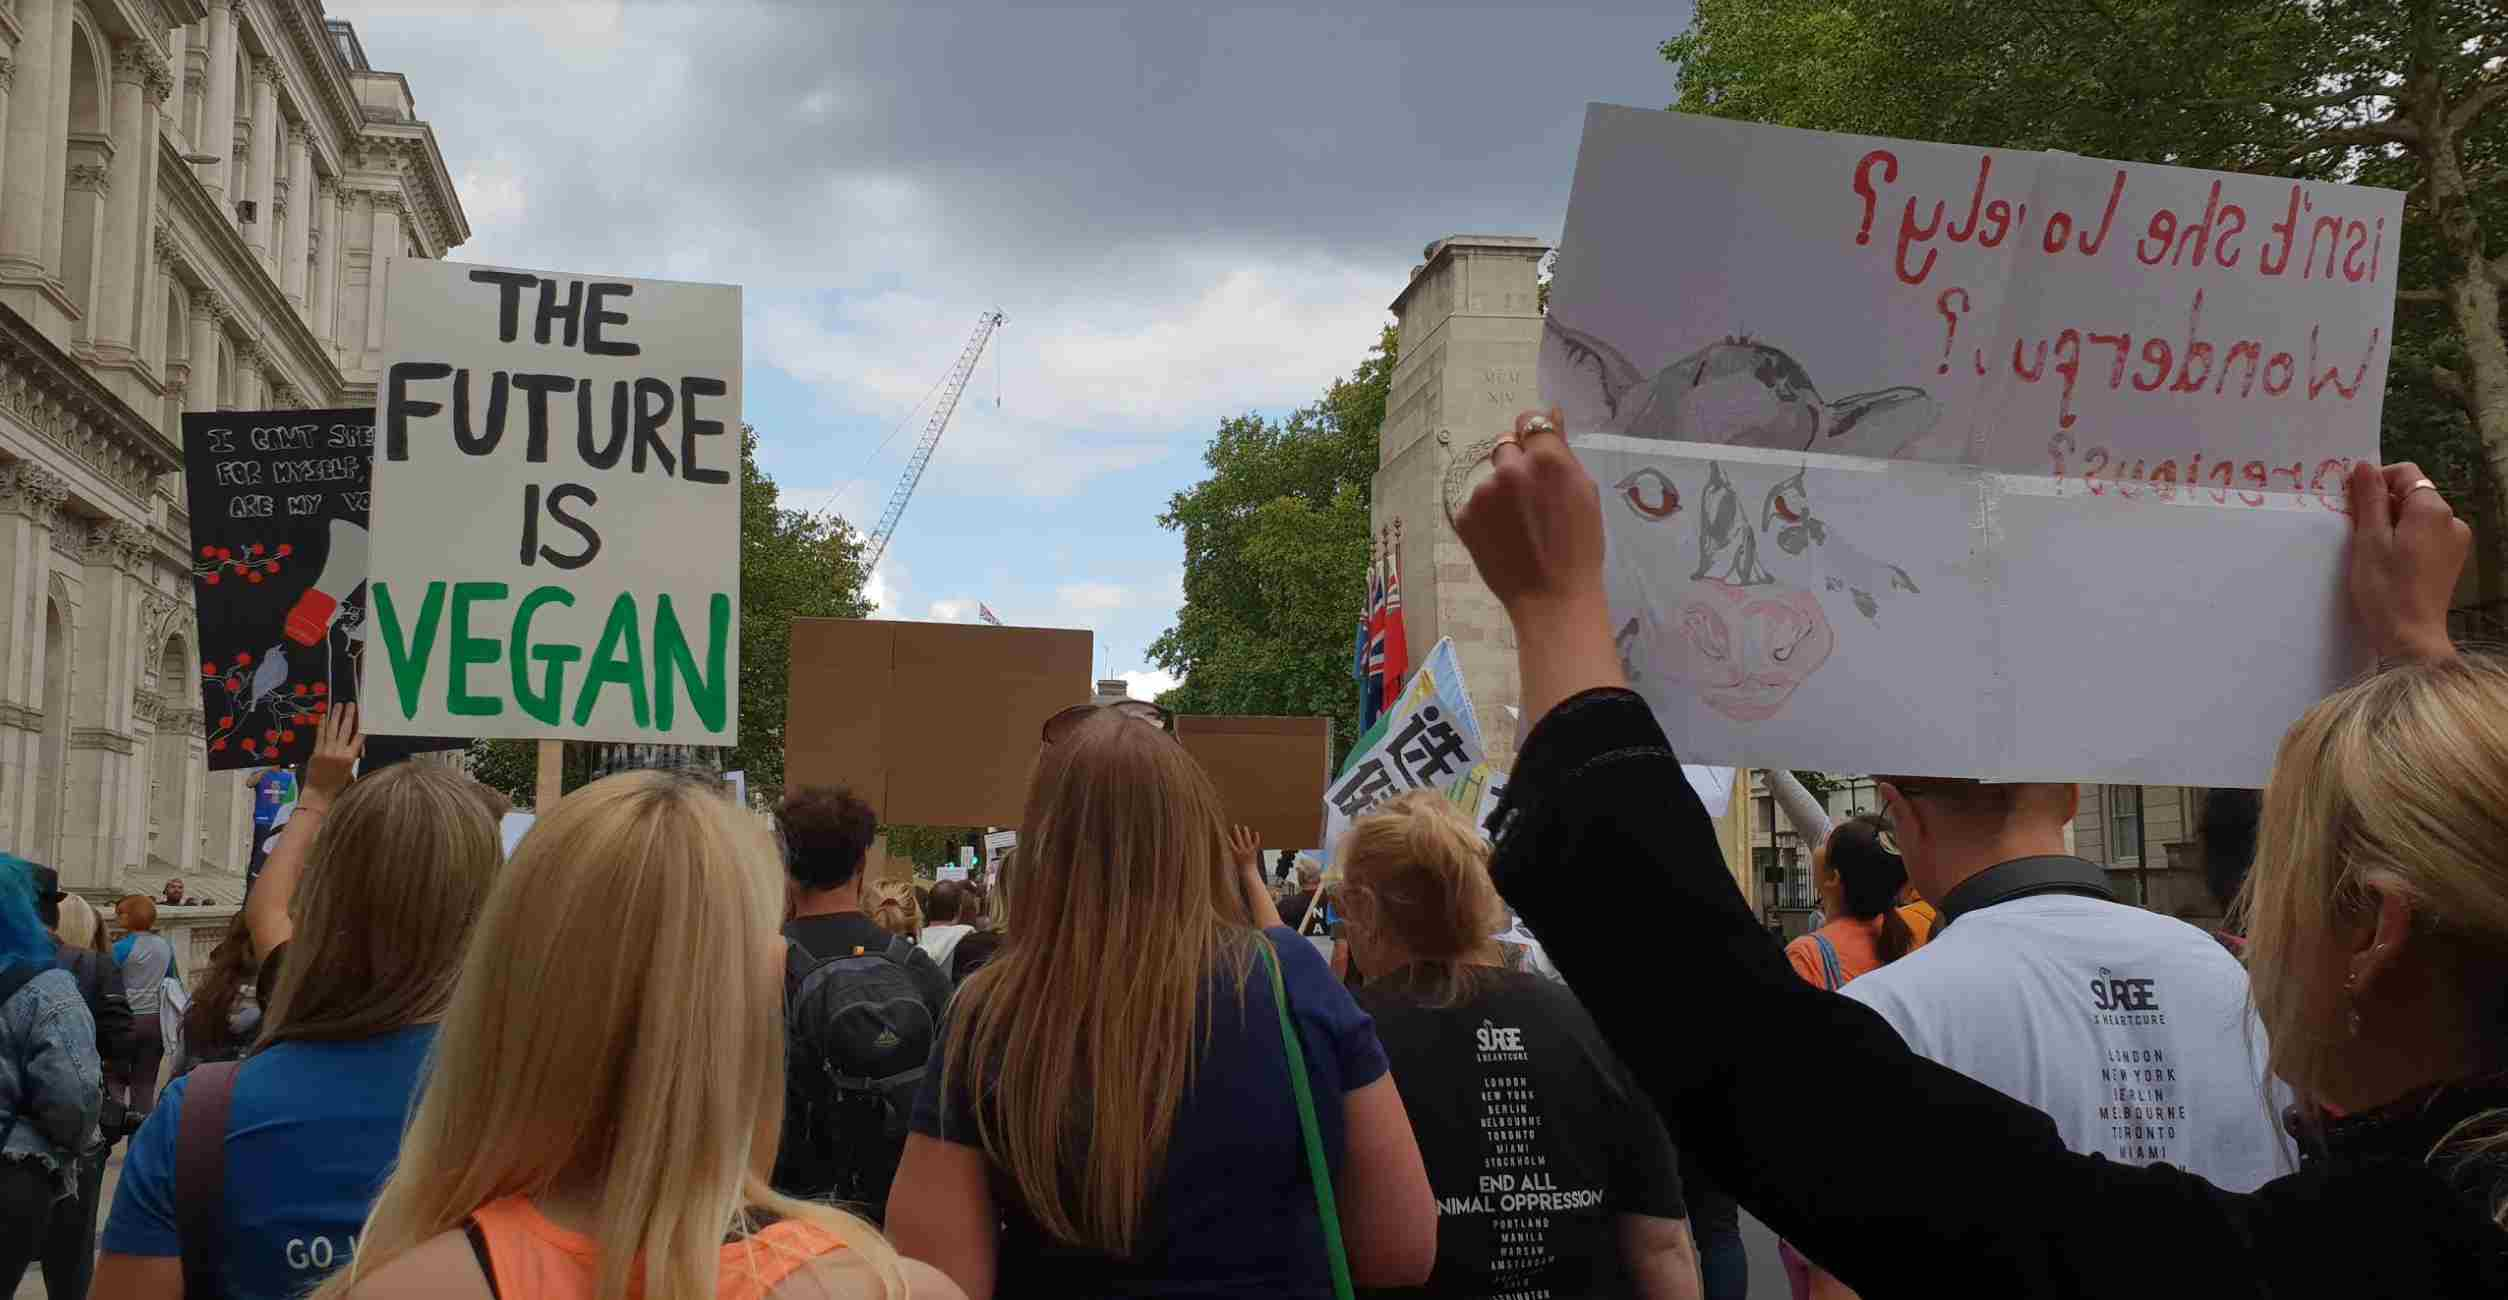 Activists at the London Animal Rights March